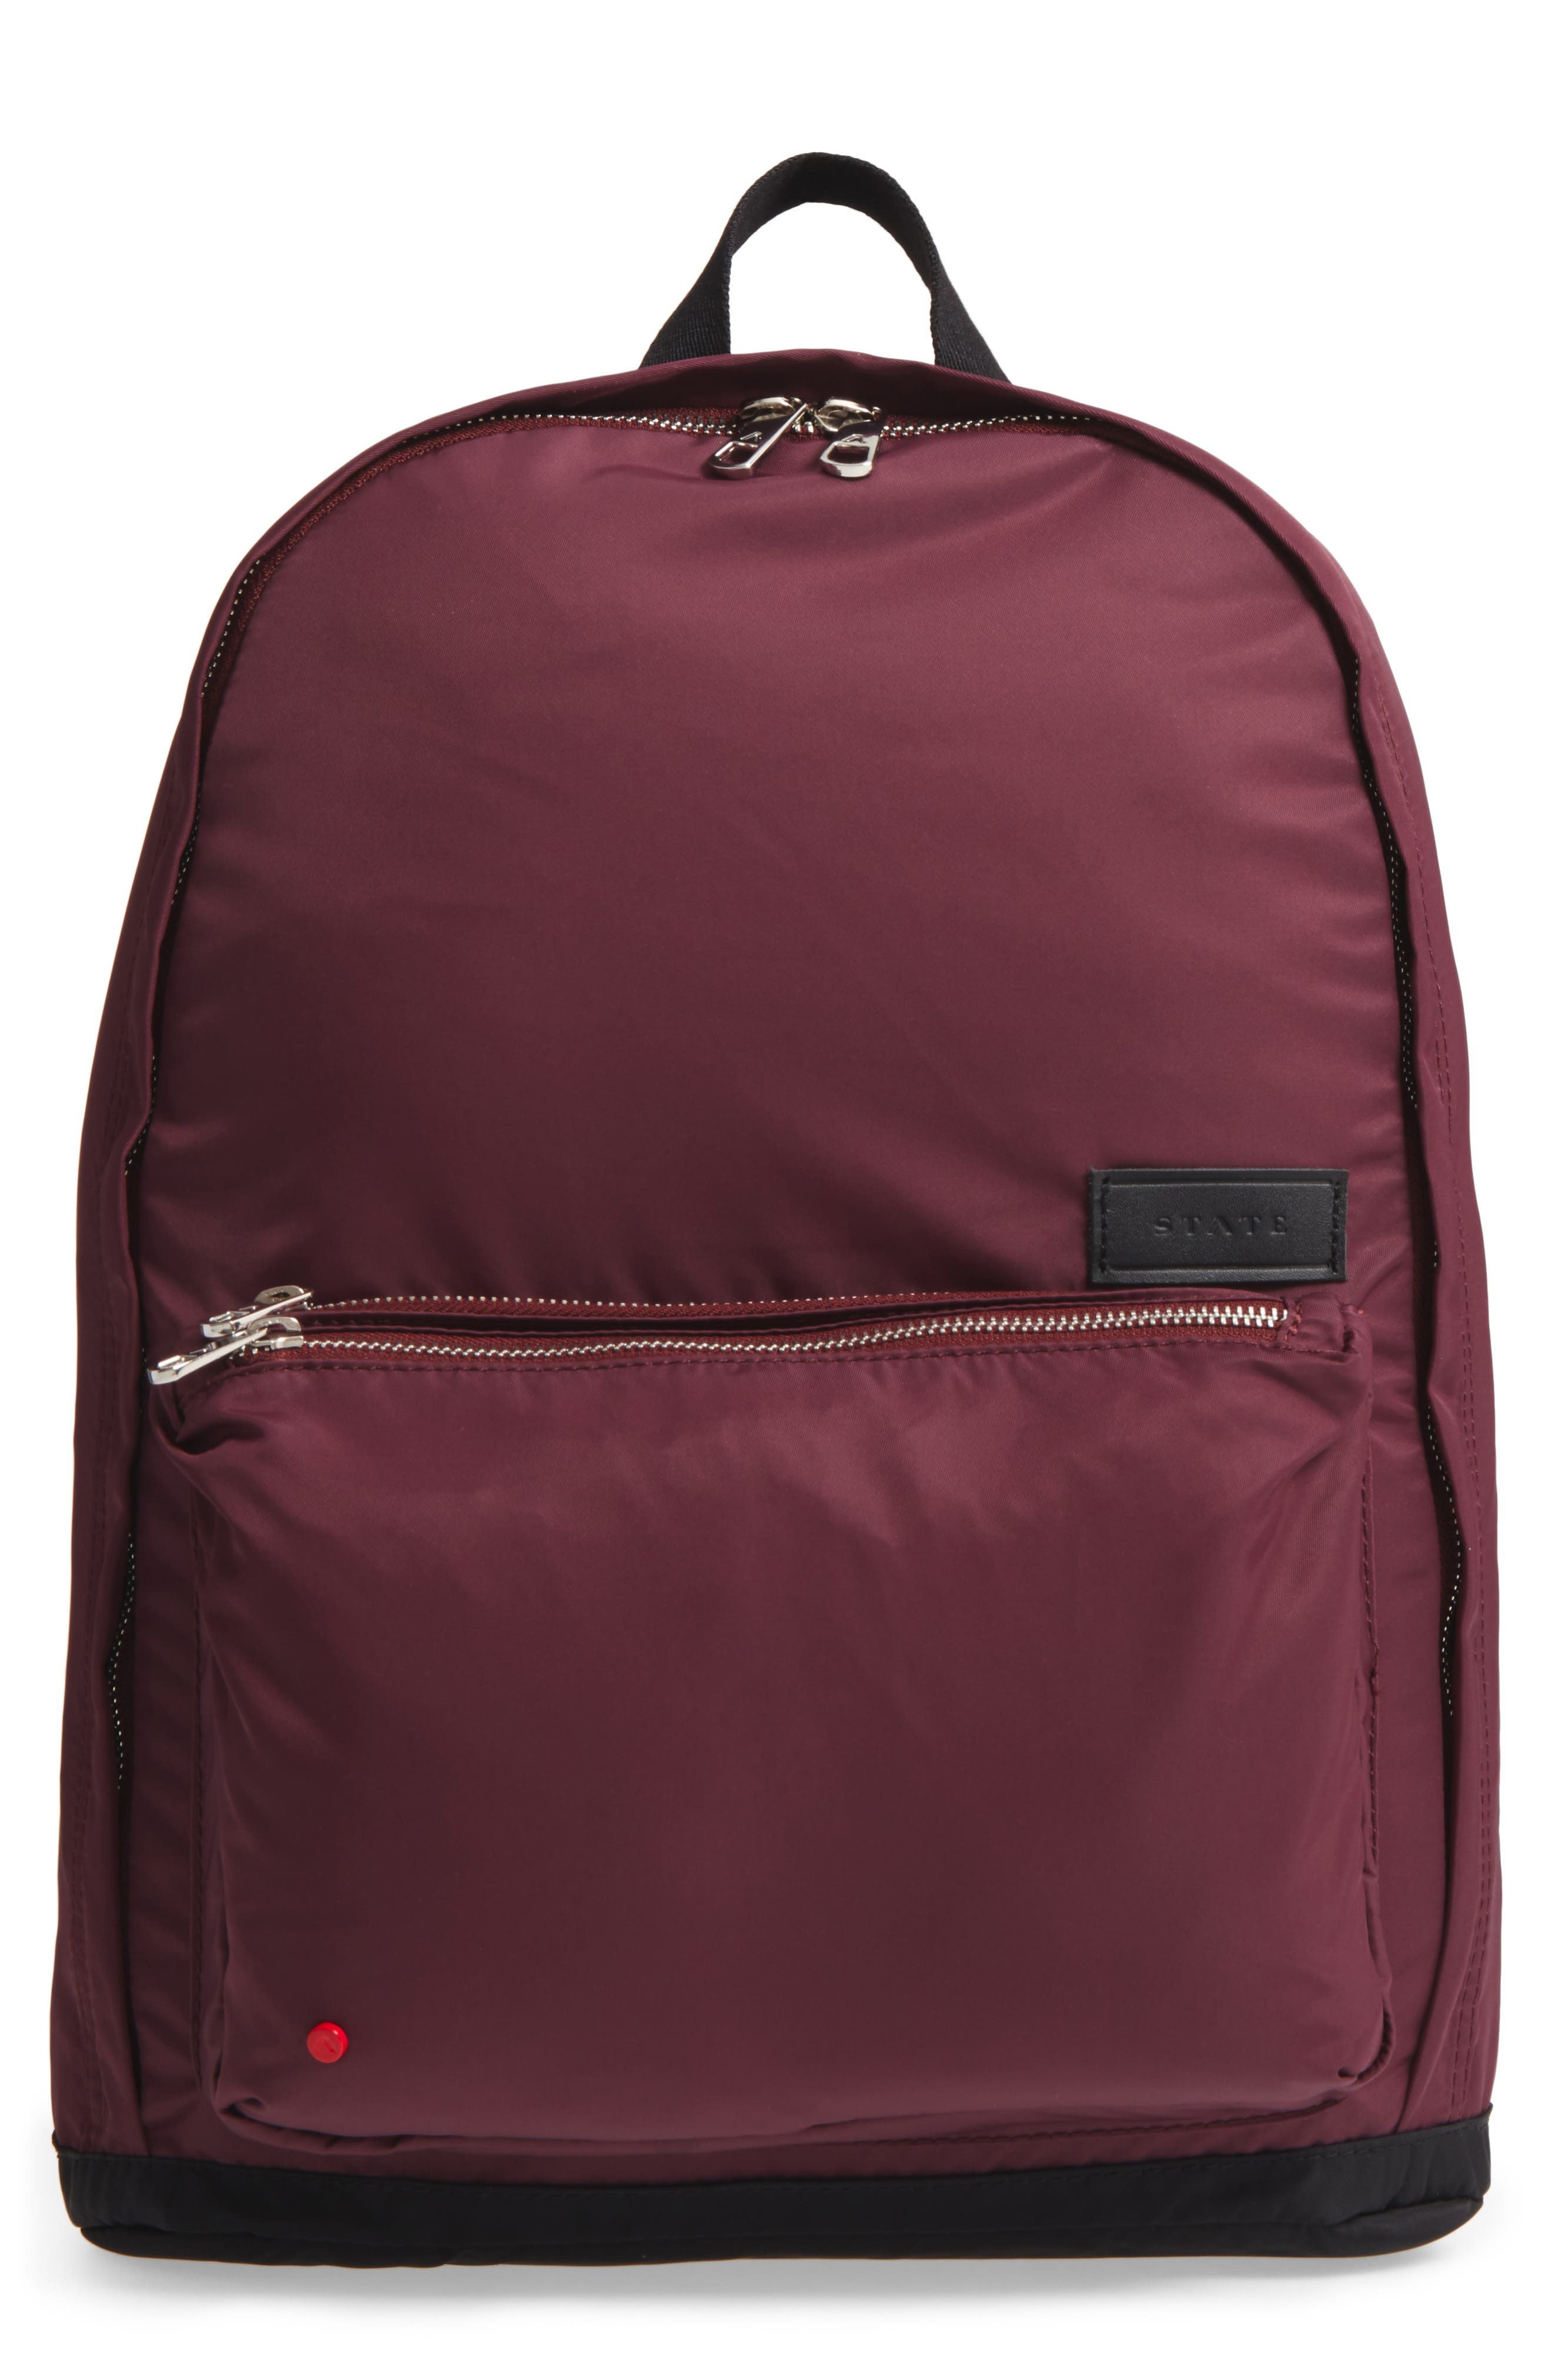 Main Image - STATE Bags The Heights Adams Backpack